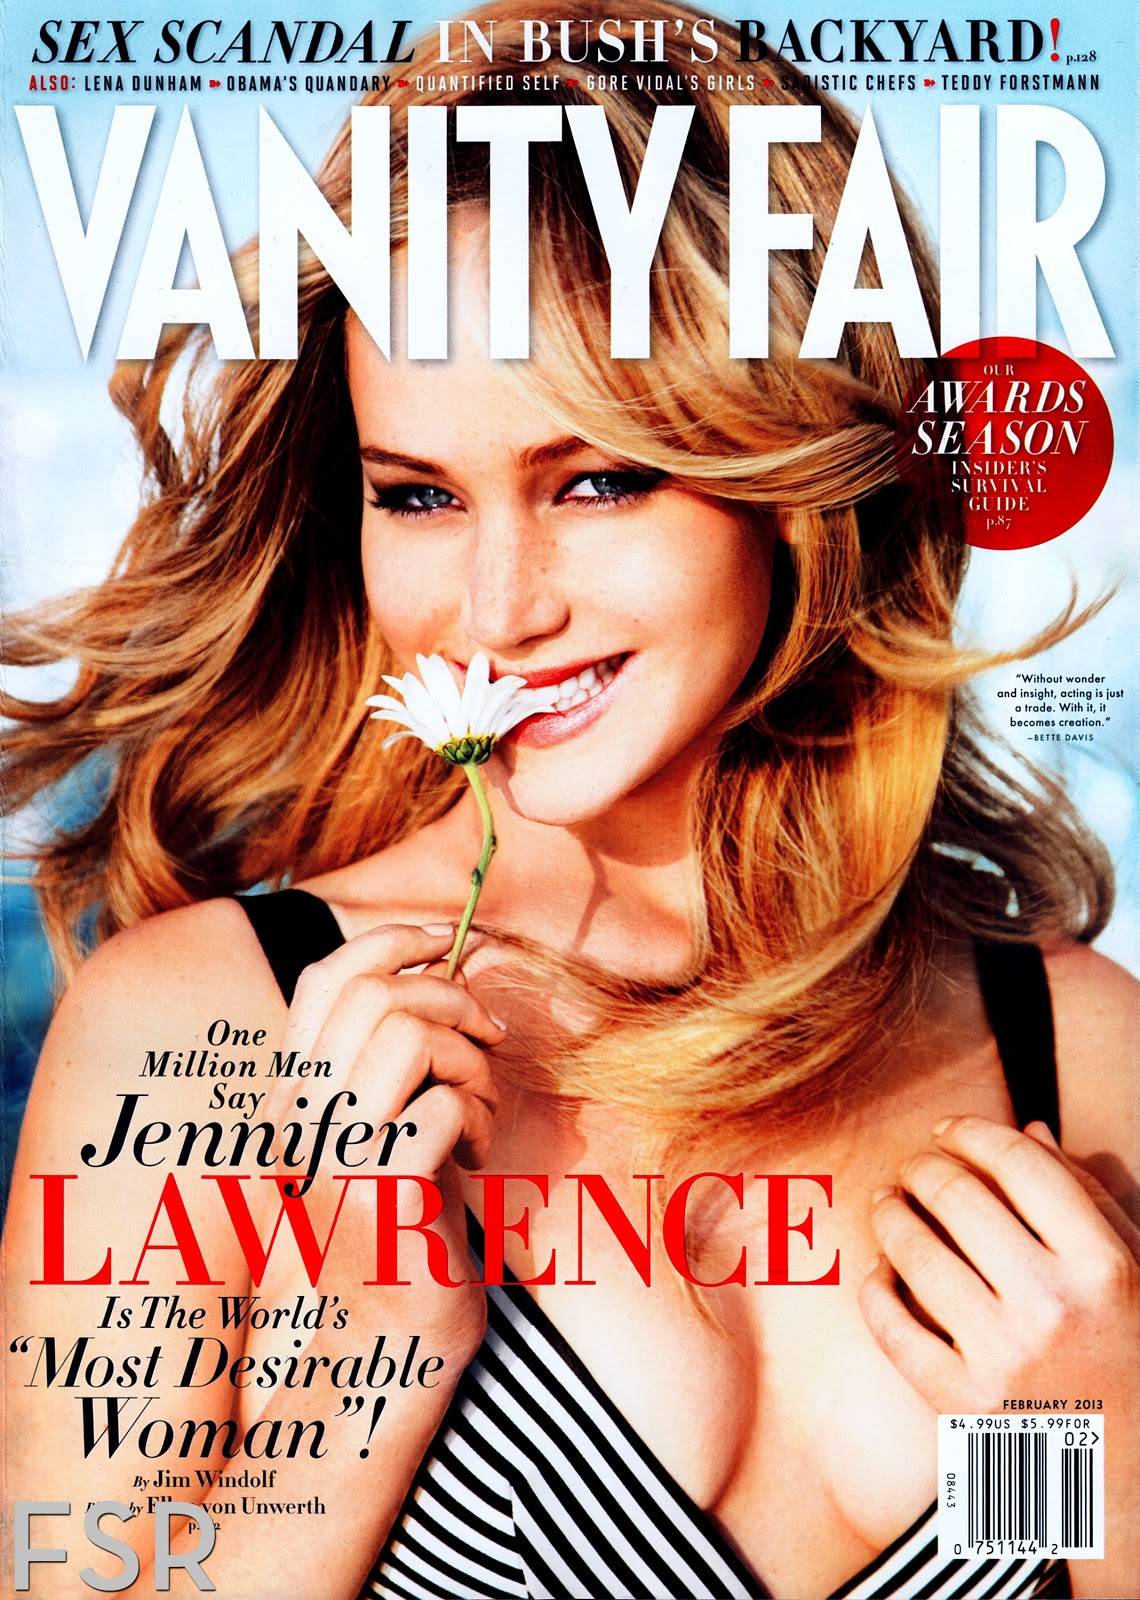 http://3.bp.blogspot.com/-Ytzkht04-Ao/UP6hSSNtdvI/AAAAAAABs7U/JLNDTLqrb7c/s1600/Jennifer-Lawrence-Vanity-Fair-February-2013.jpg